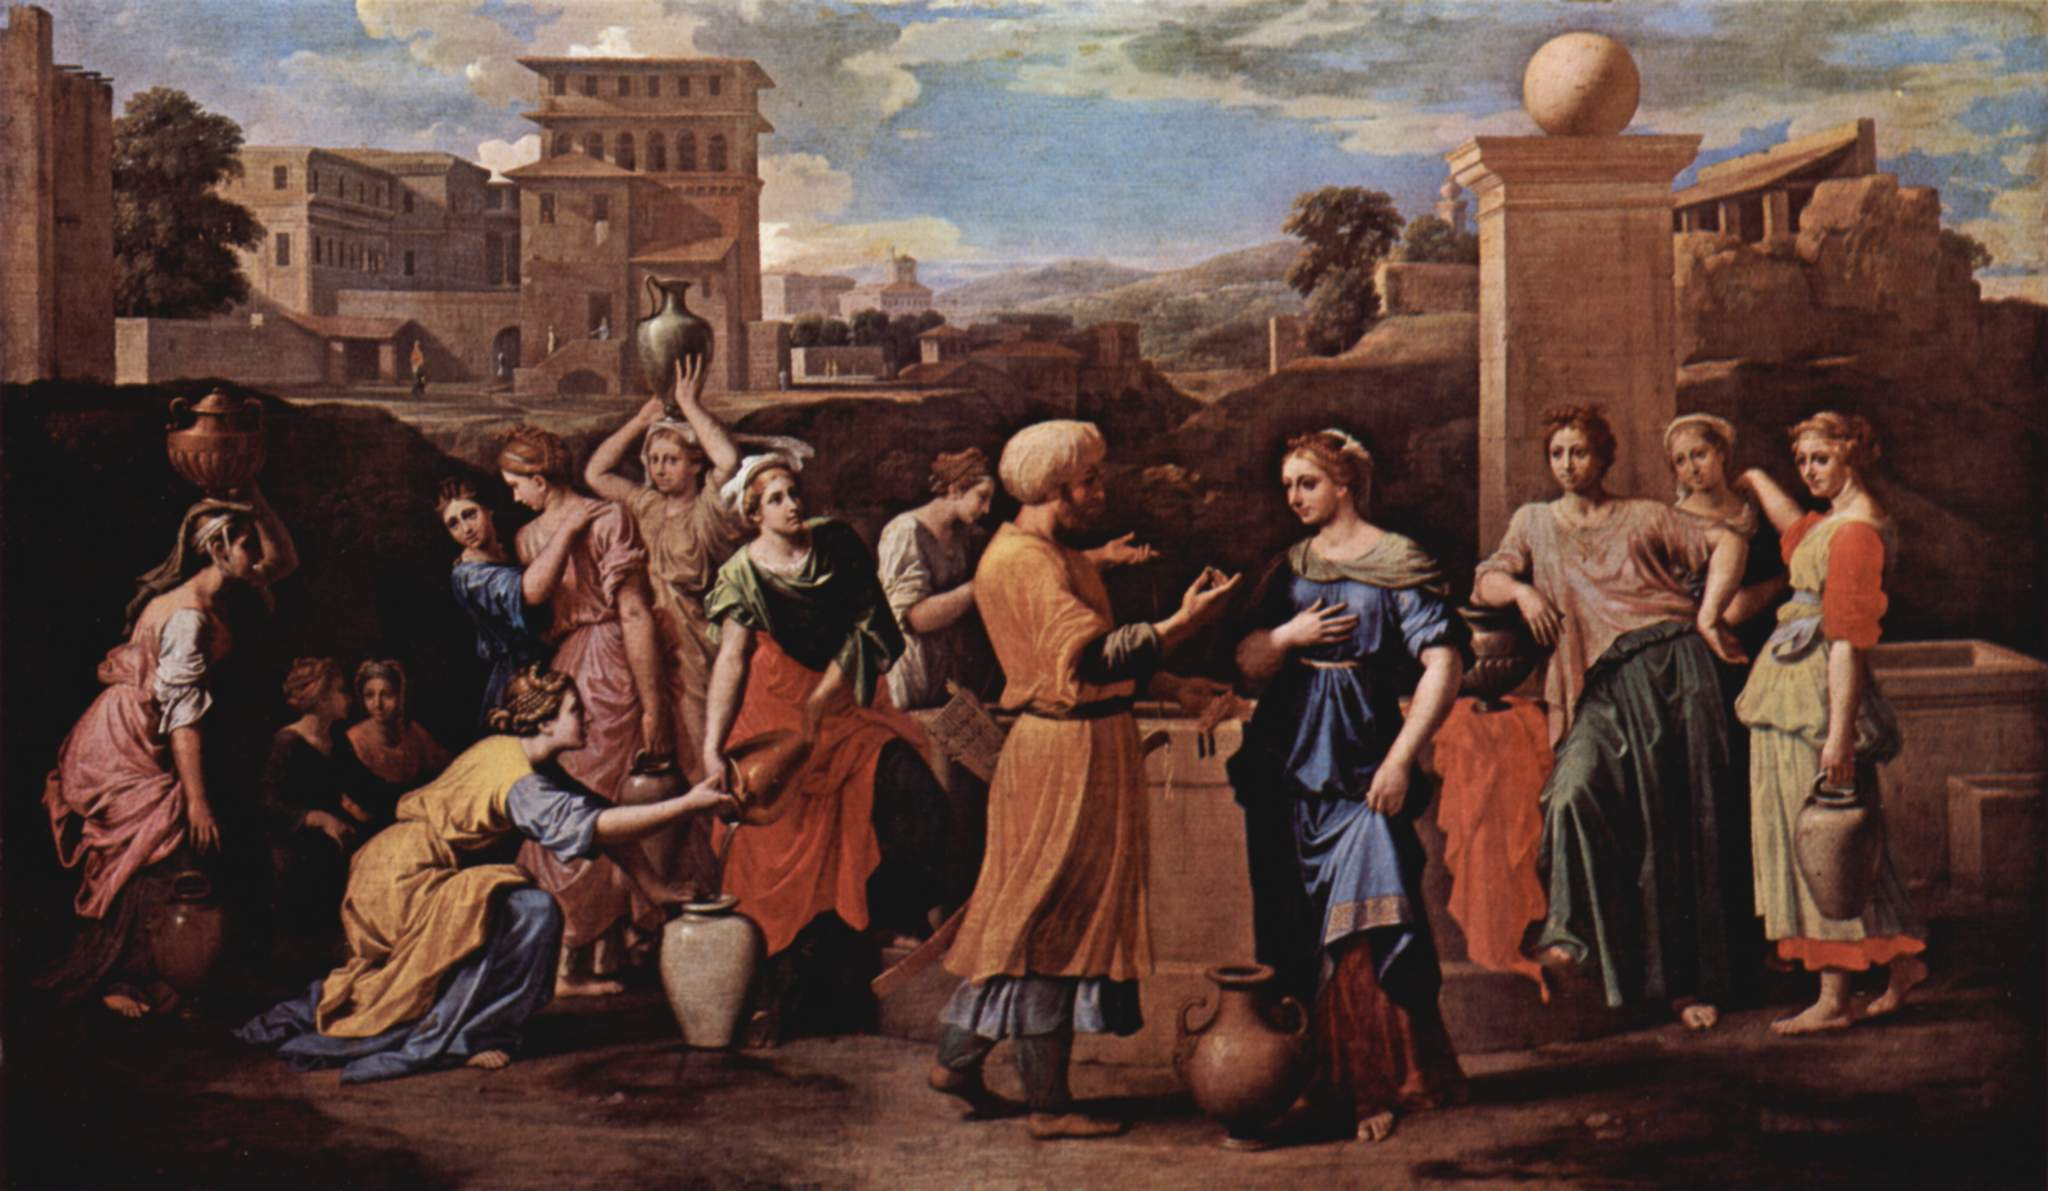 Eliezer and Rebecca at the Well  by Nicolas Poussin, 1648